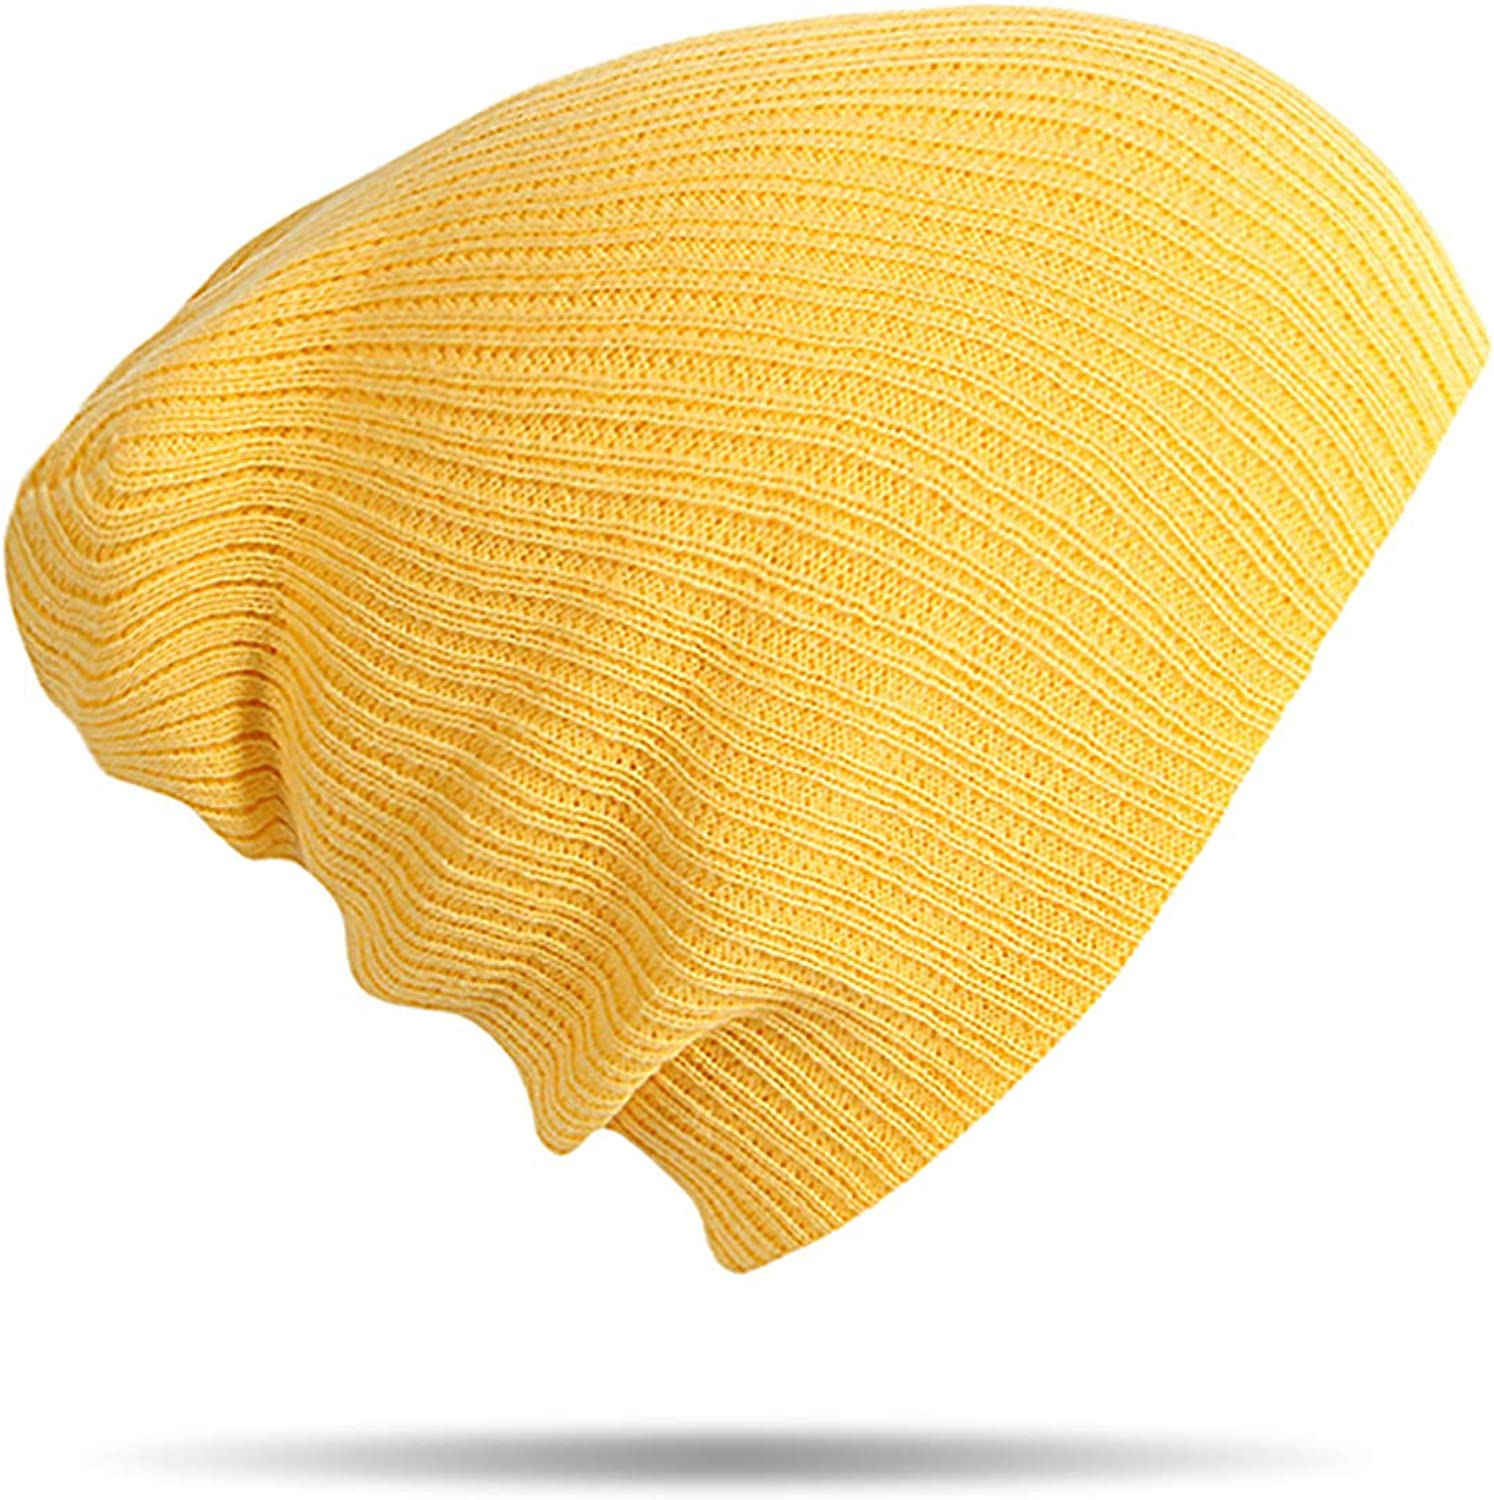 Winter Warm Beanies Hats Acrylic Hip Hop Soft Knitted Hat Female Cap for Boys Girls Outdoor Caps